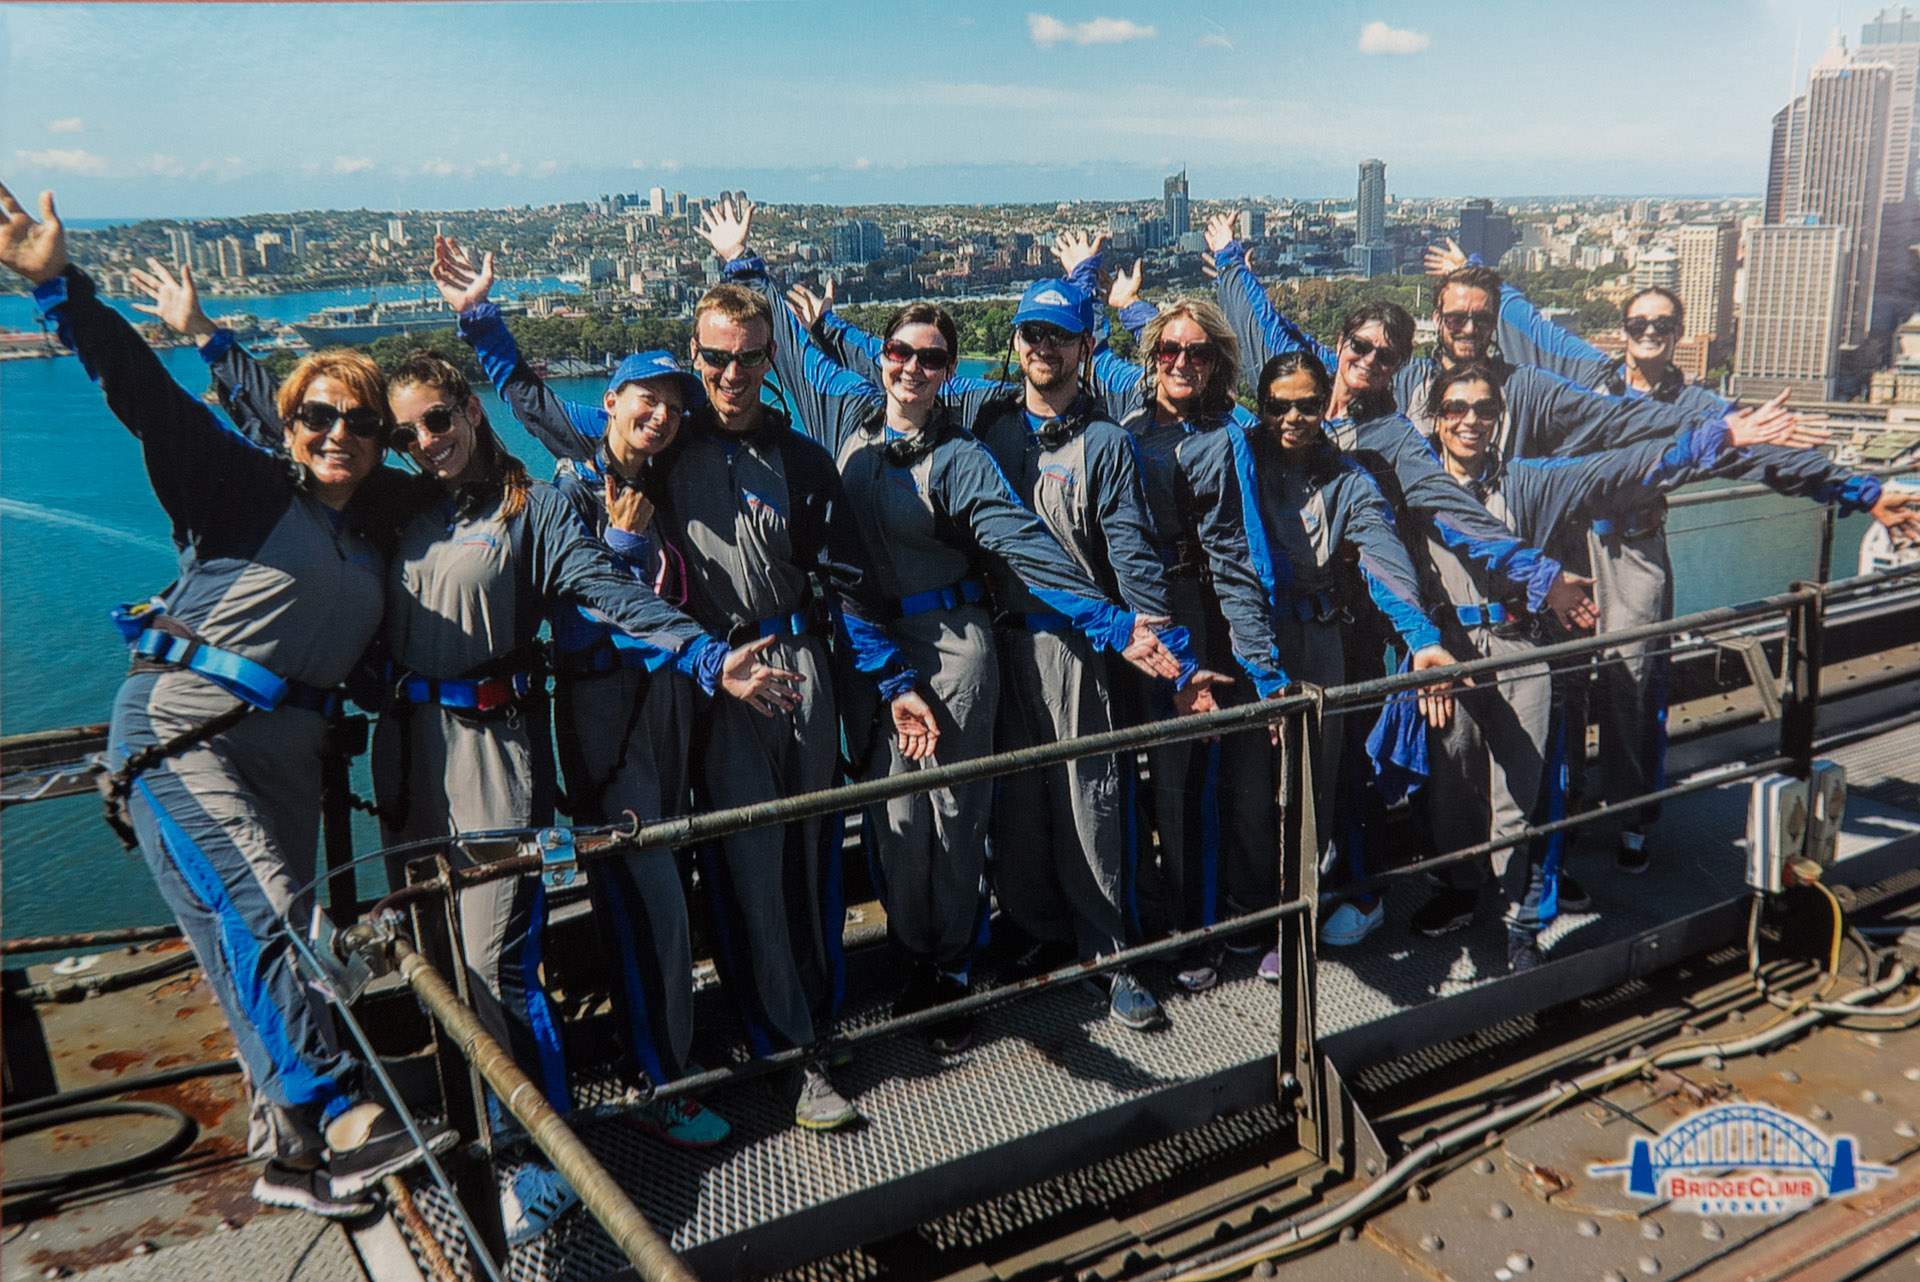 Top of the Sydney Harbour Bridge